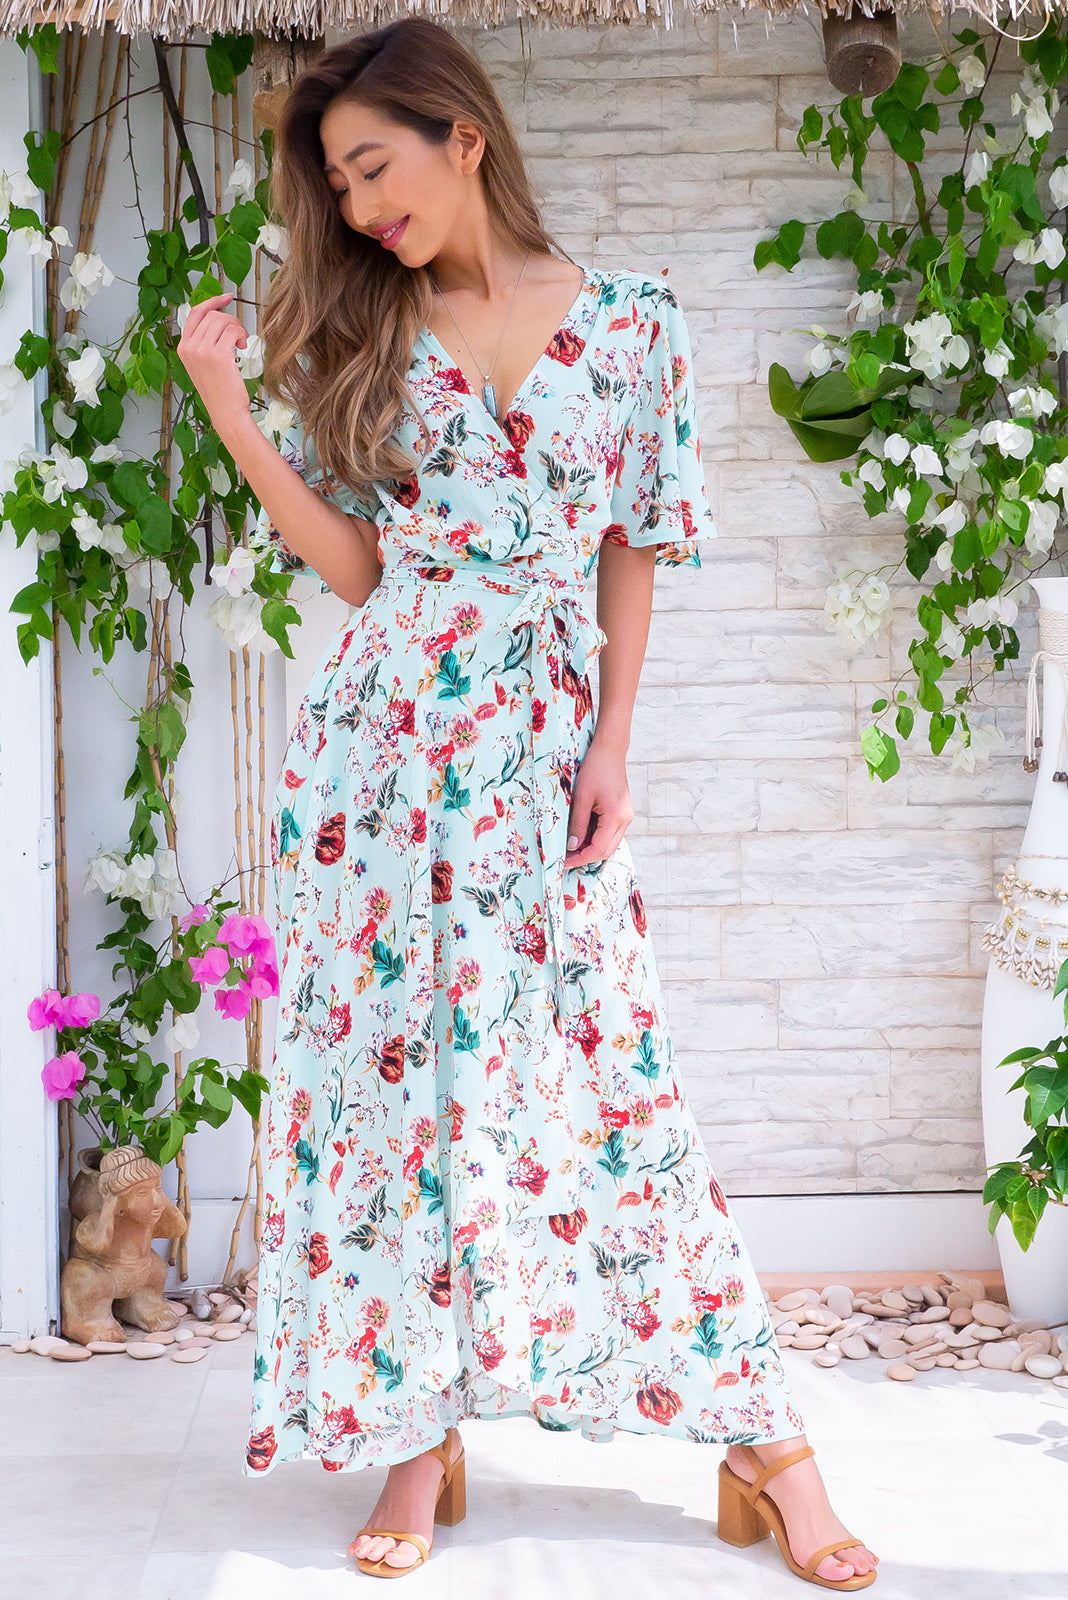 Cinnamon Giverny Mint Maxi Wrap Dress, airy wrap-style frock features, flutter petal sleeves, V neckline, adjustable wrap tie waist, elasticated back waist band, scooped hem, shorter at the front in bright mint base with red, orange, white floral design in crinkle textured woven 100% rayon.